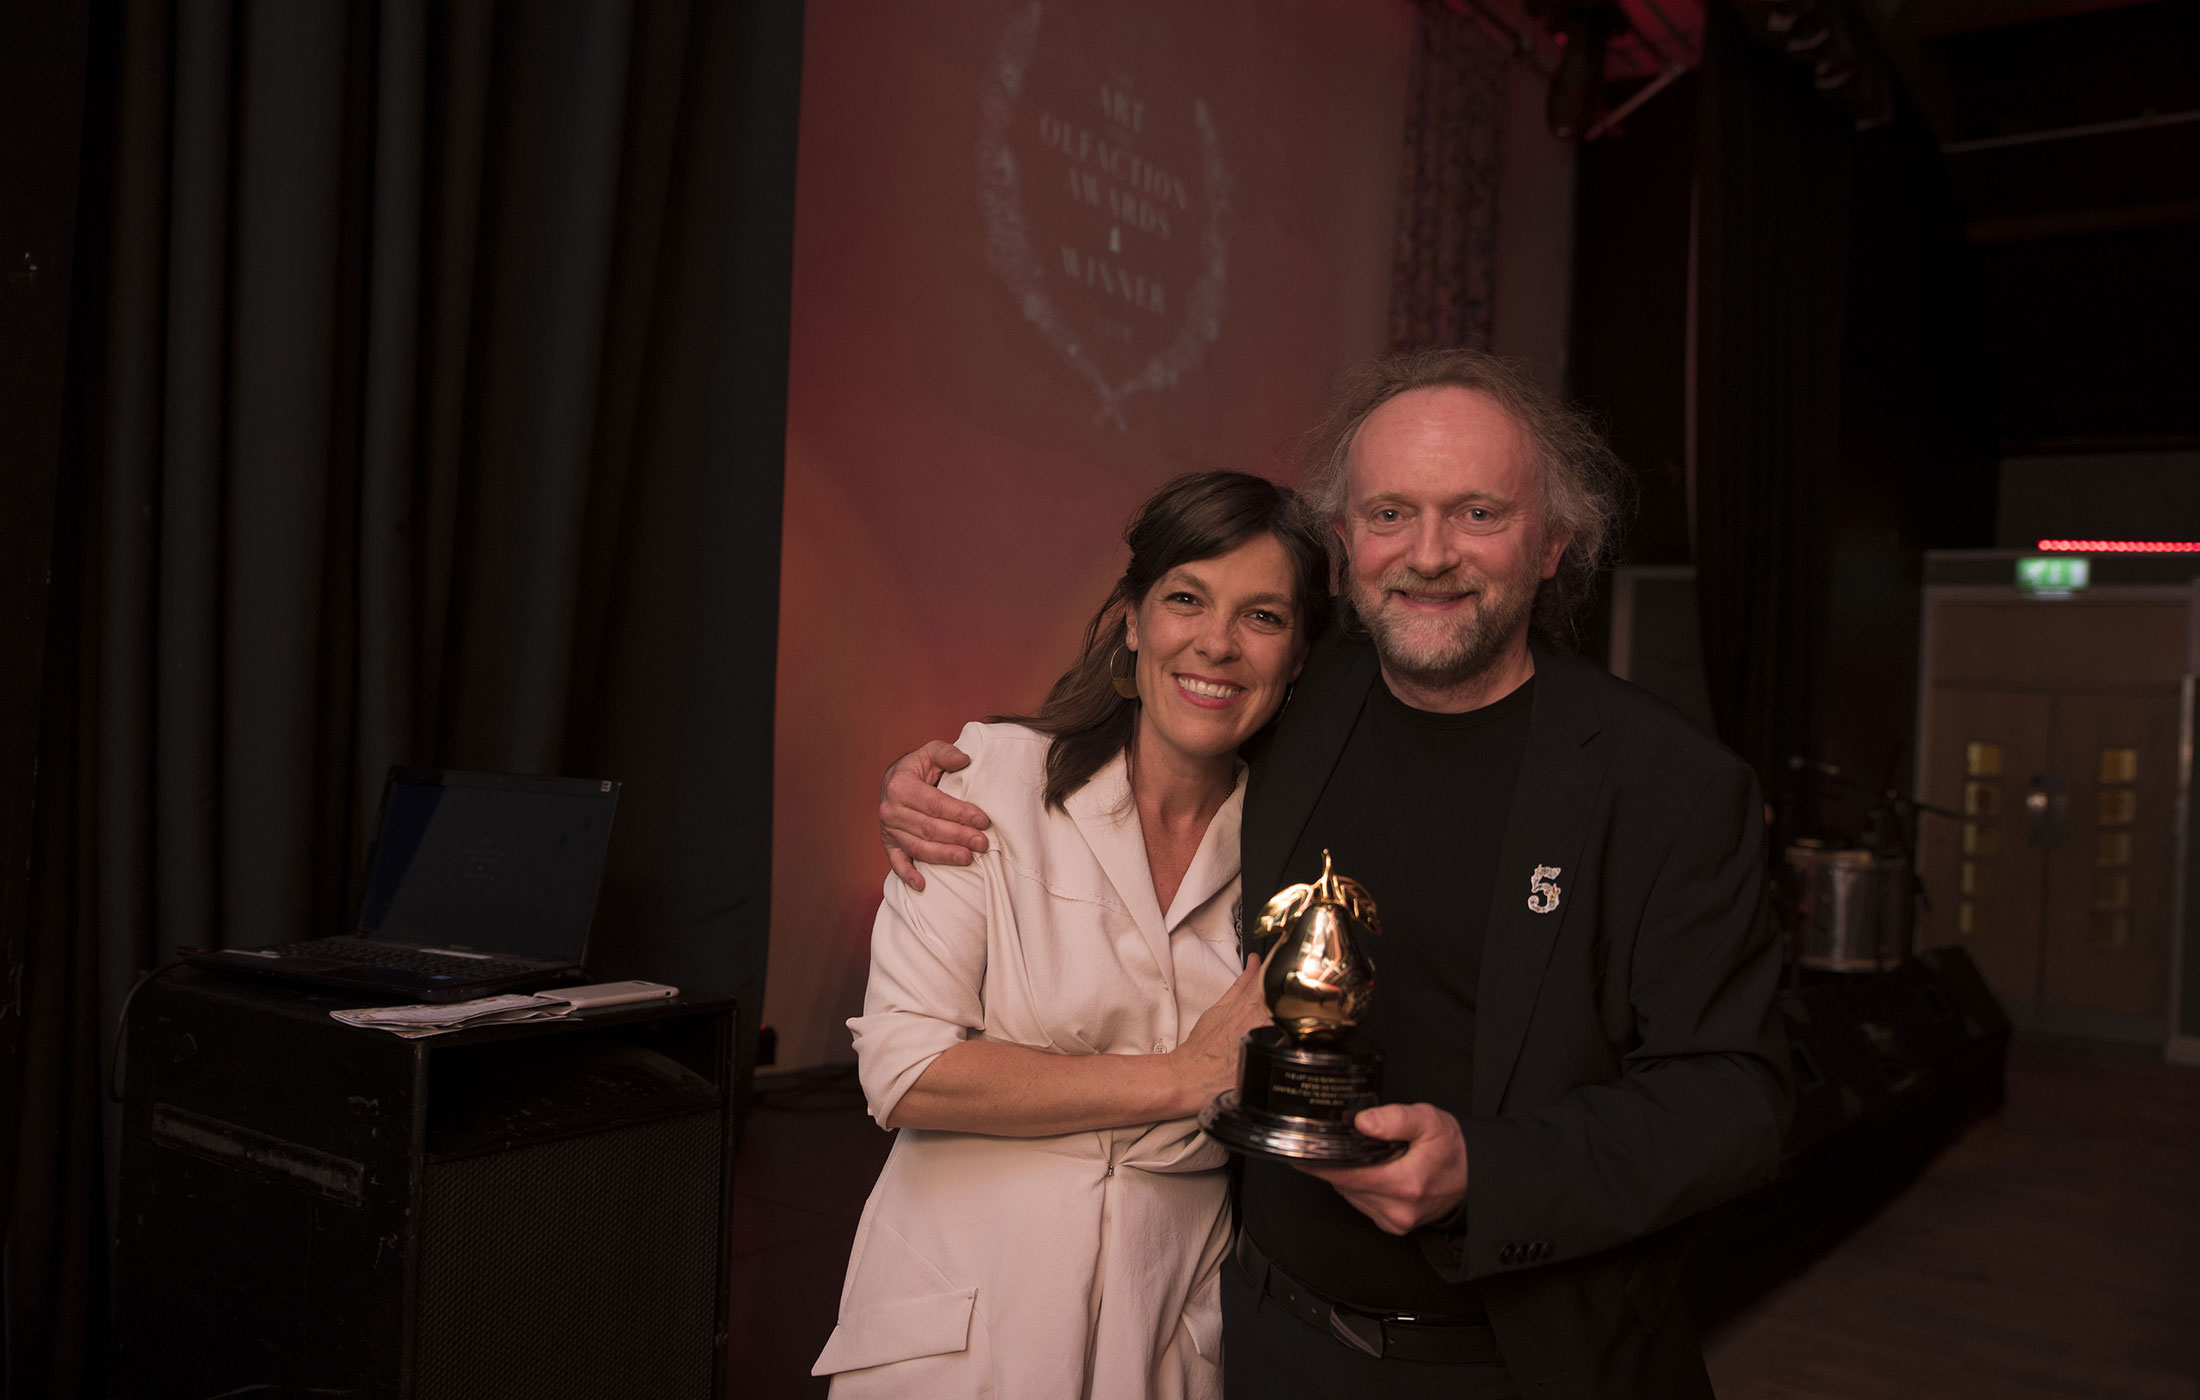 Saskia Wilson-Brown and Peter de Cuper at the Art and Olfaction Awards, Photo by Marina Chichi